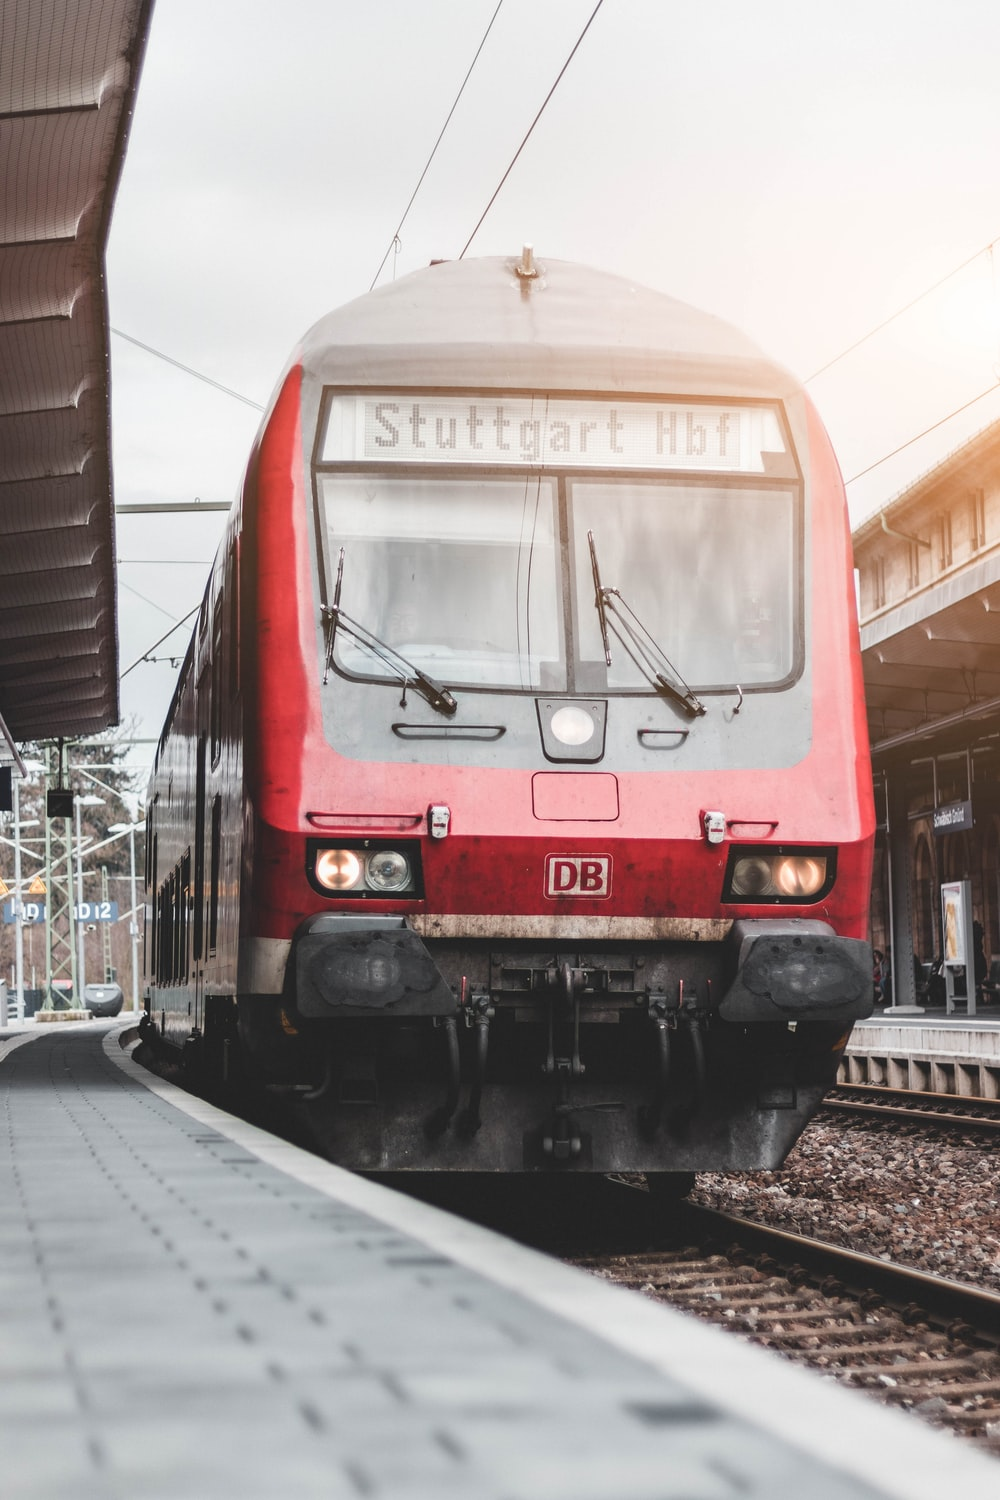 red and black train during daytime